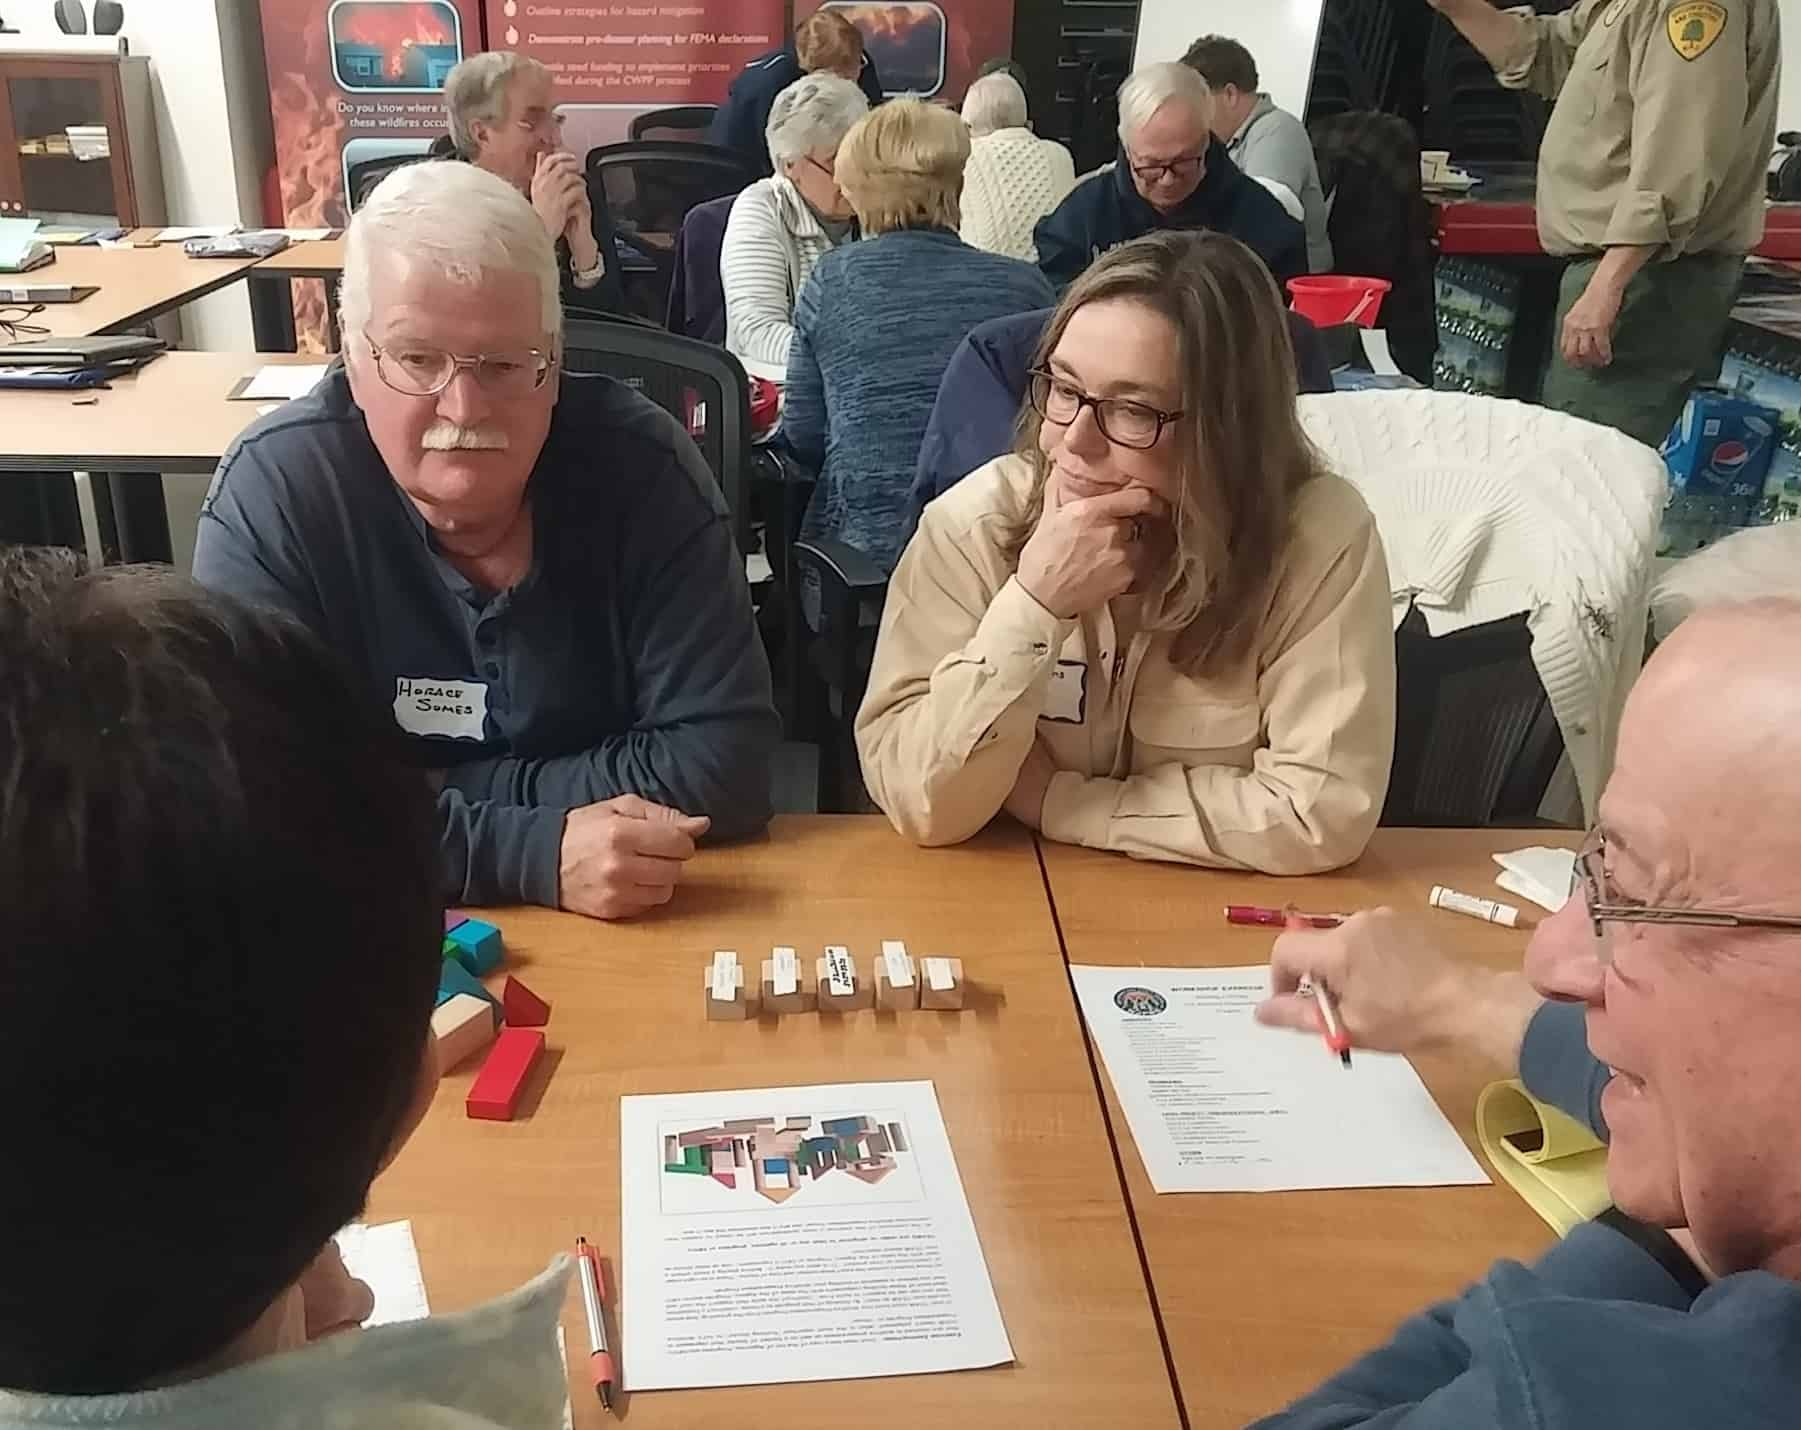 Small groups work through wildfire preparedness plan exercise with building blocks.